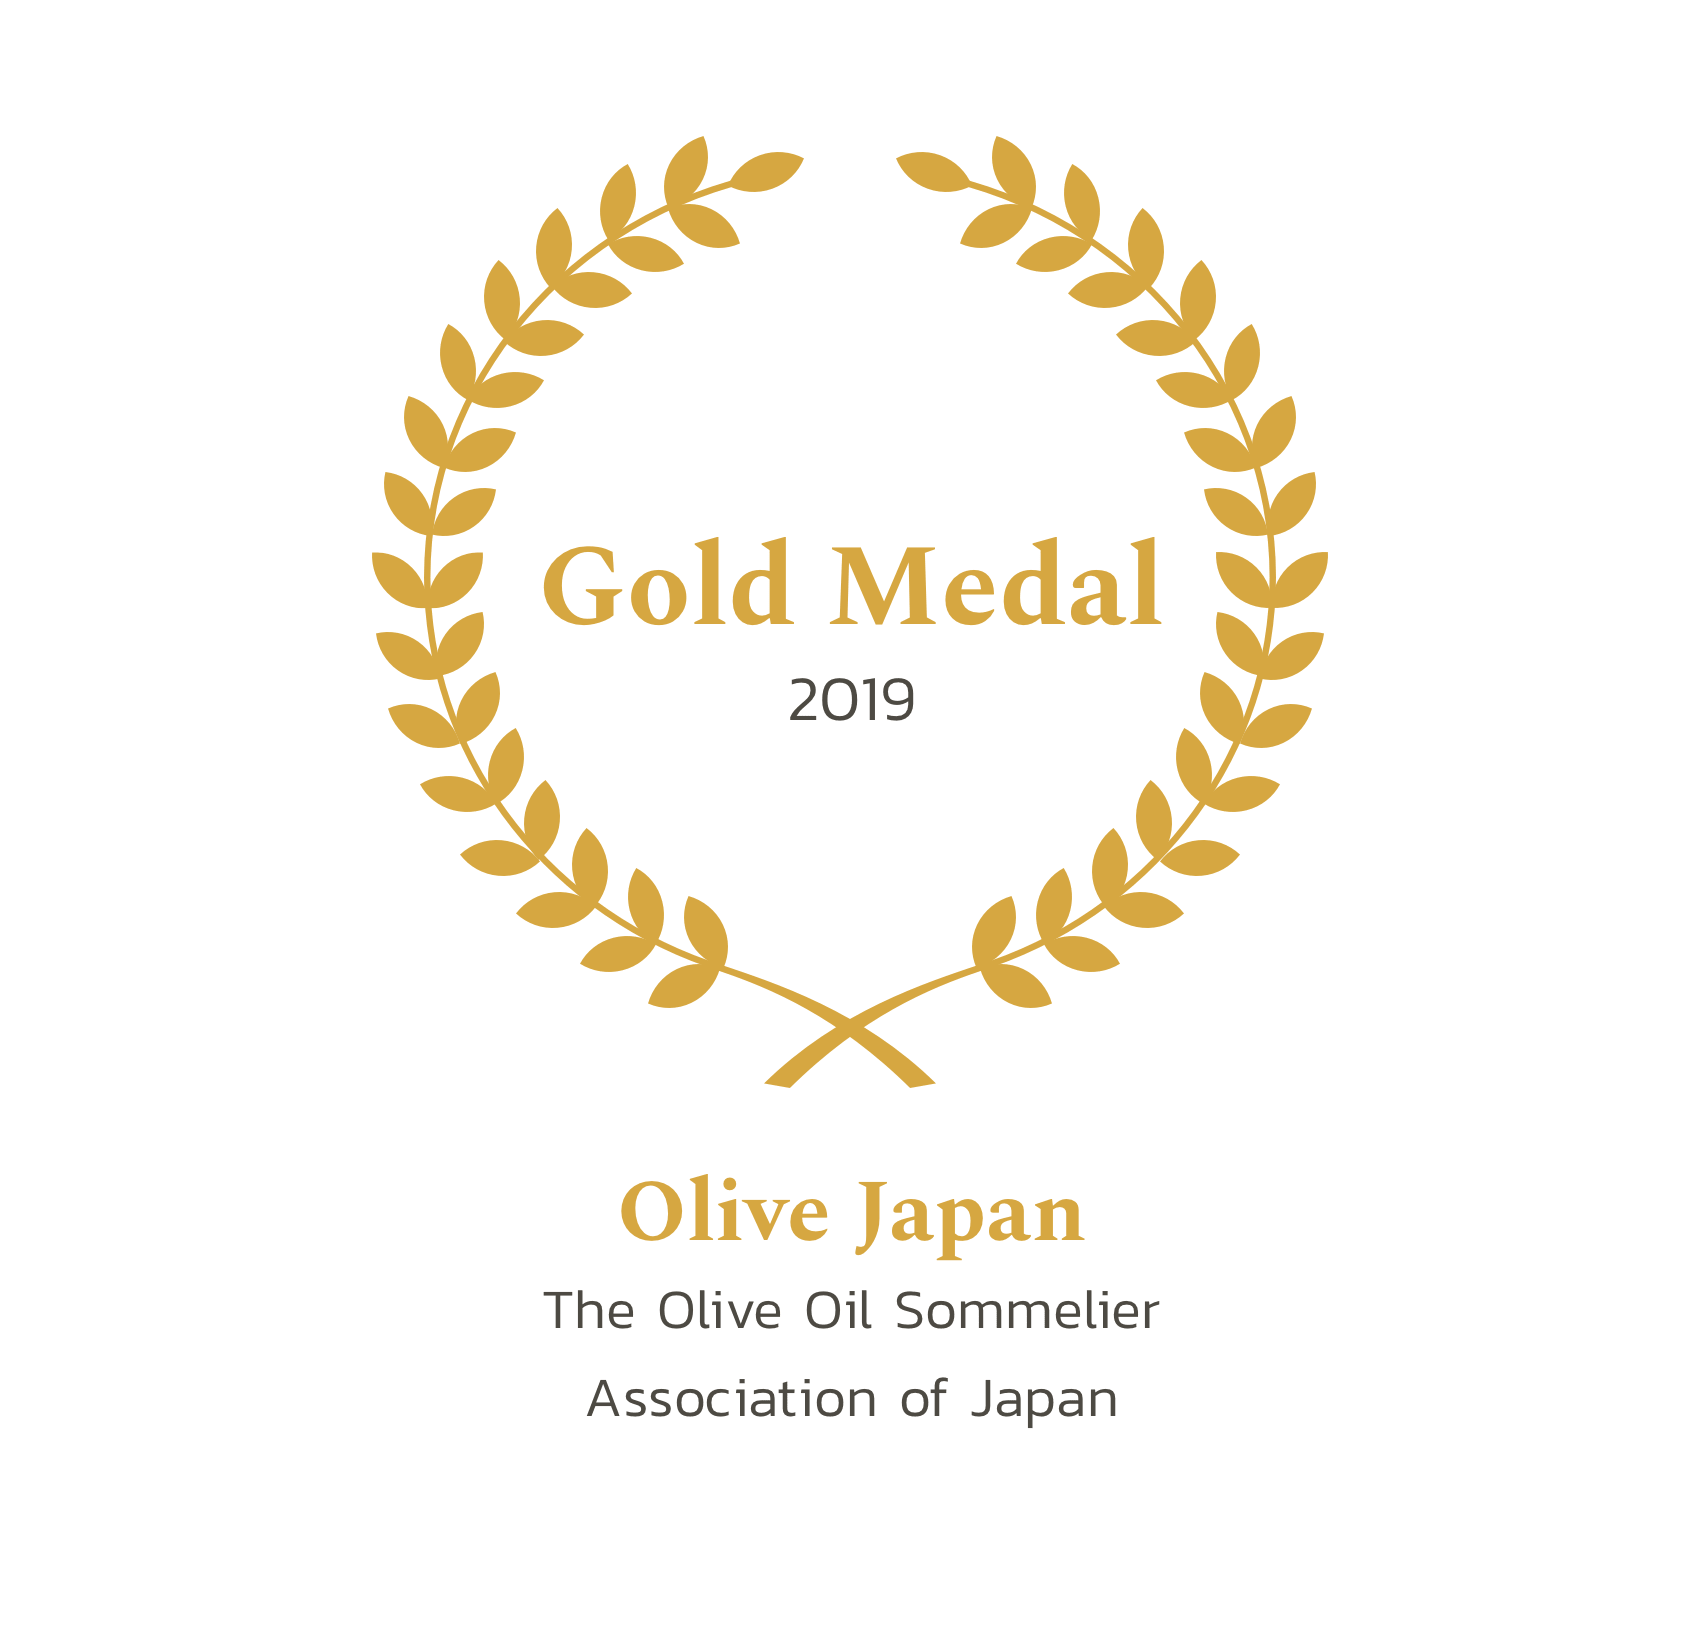 OLIVE JAPAN 2019 - GOLD MEDAL The Olive Oil Sommelier Association of Japan